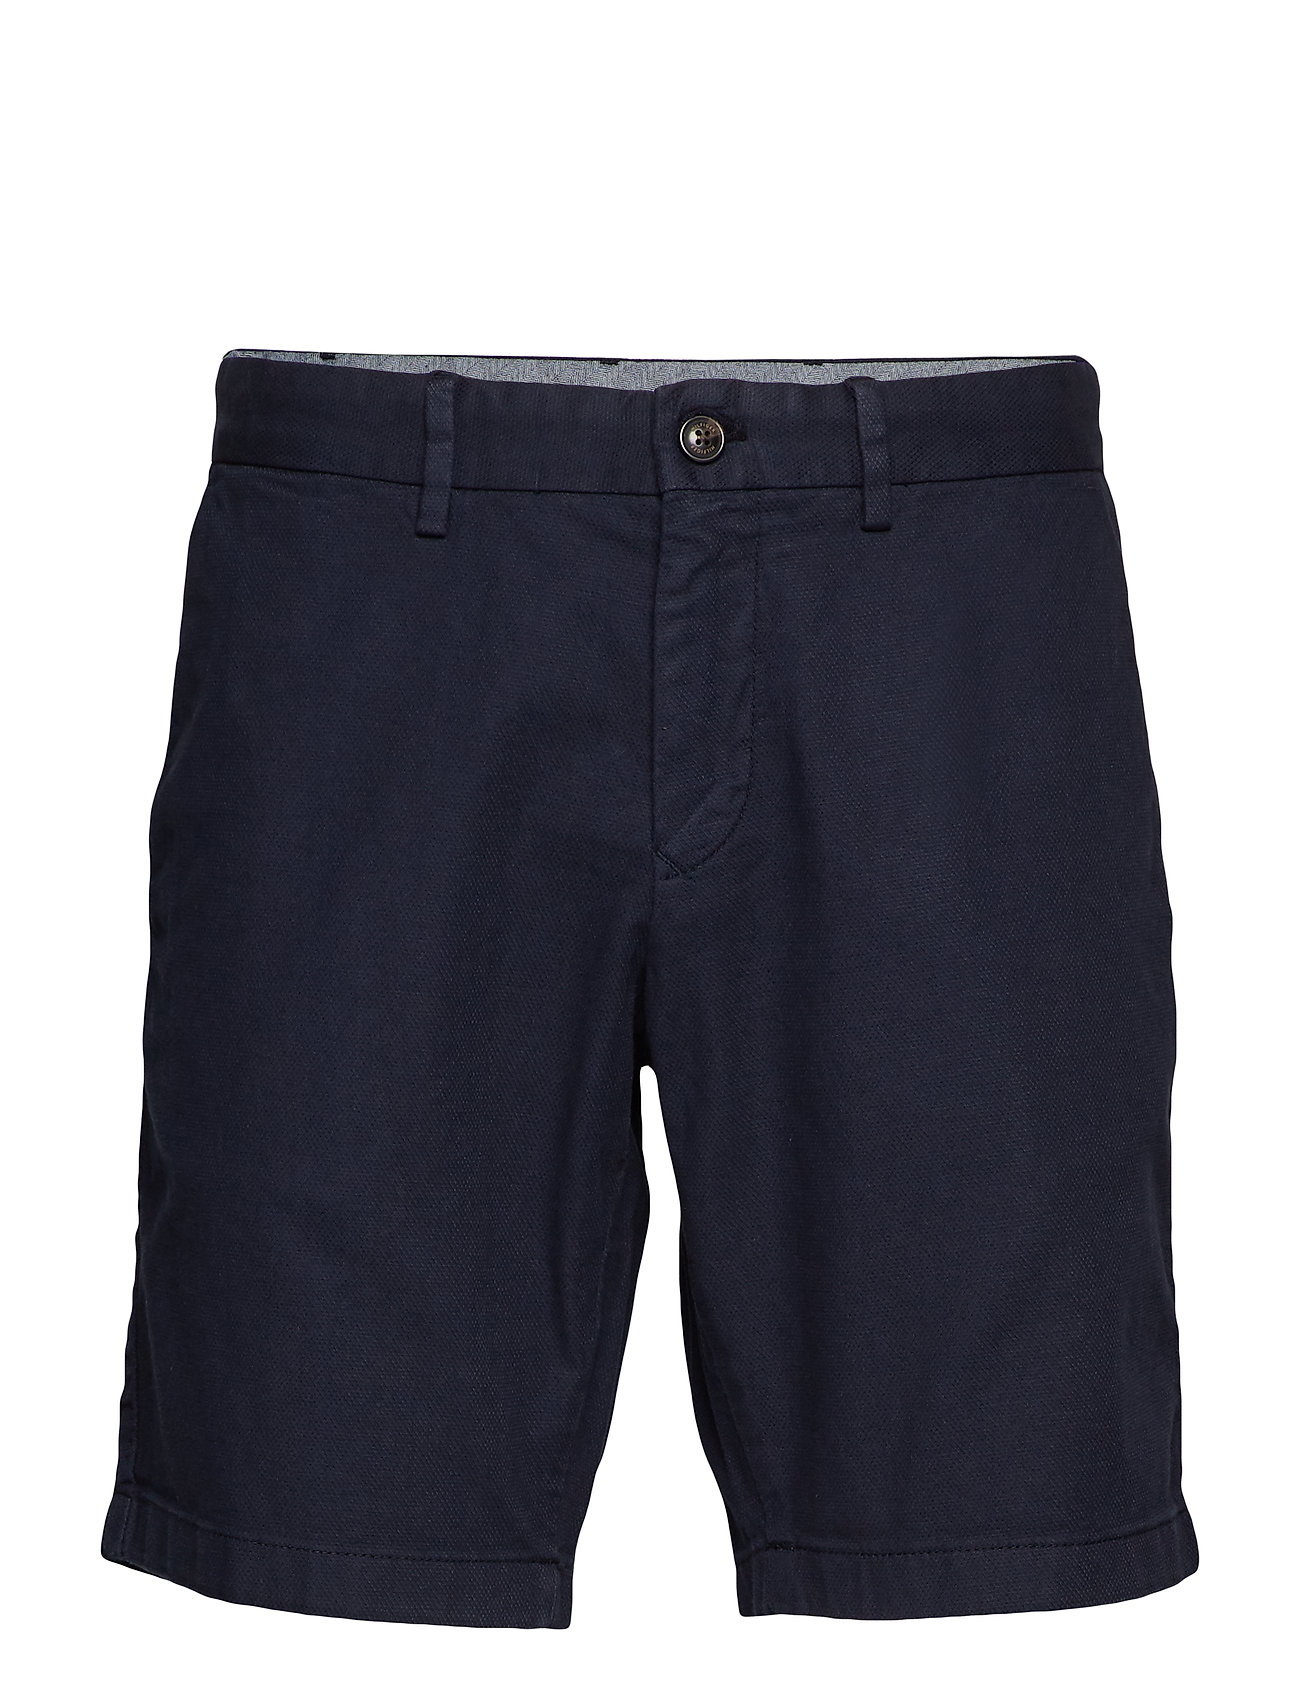 Tommy Hilfiger BROOKLYN STRUCTURE S - SKY CAPTAIN